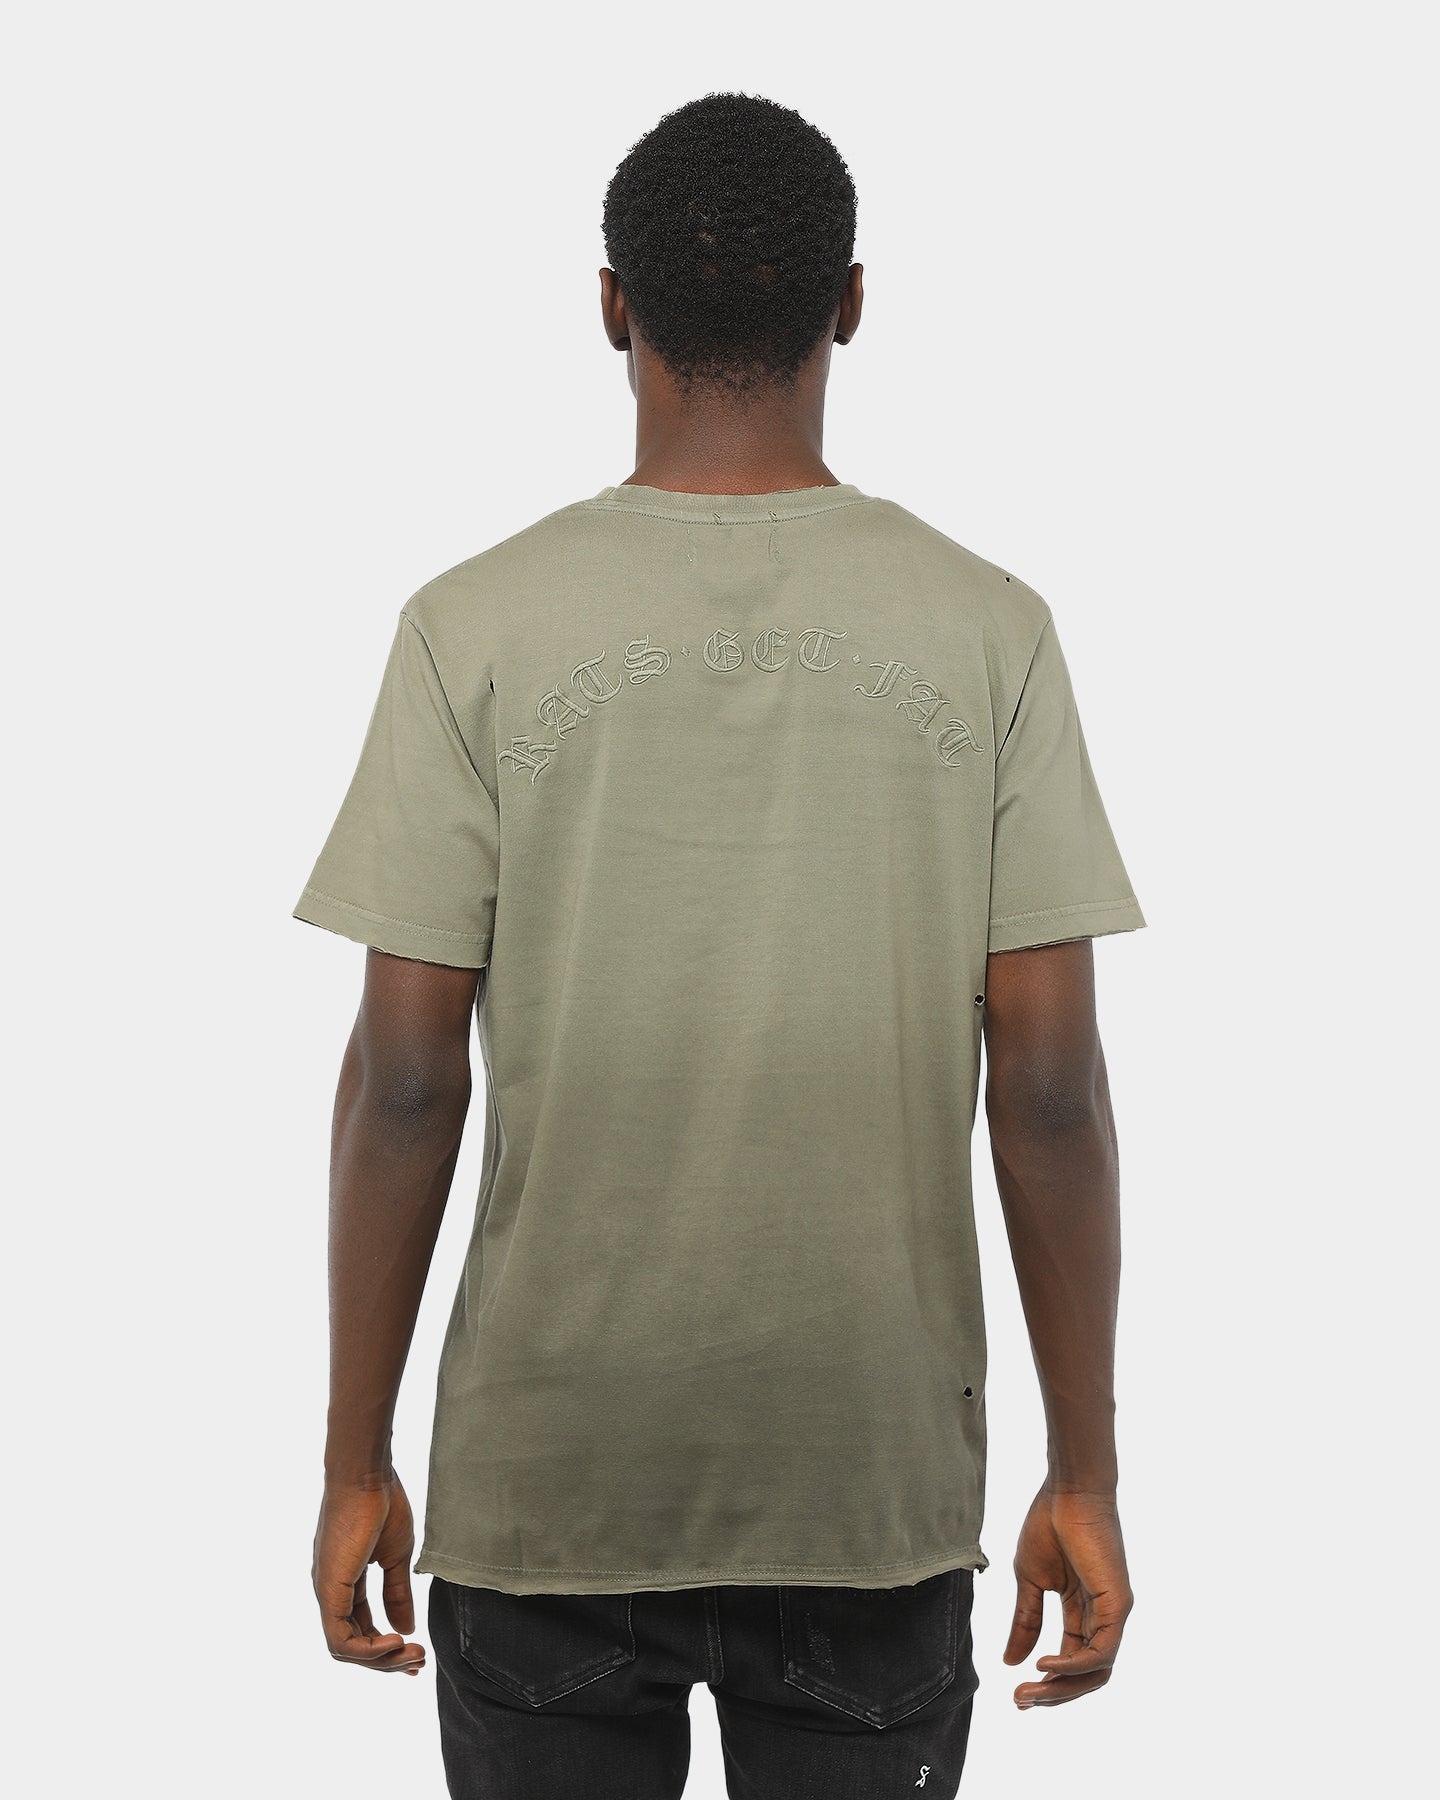 Rats Get Fat Faded Ice Tee Olive Fade